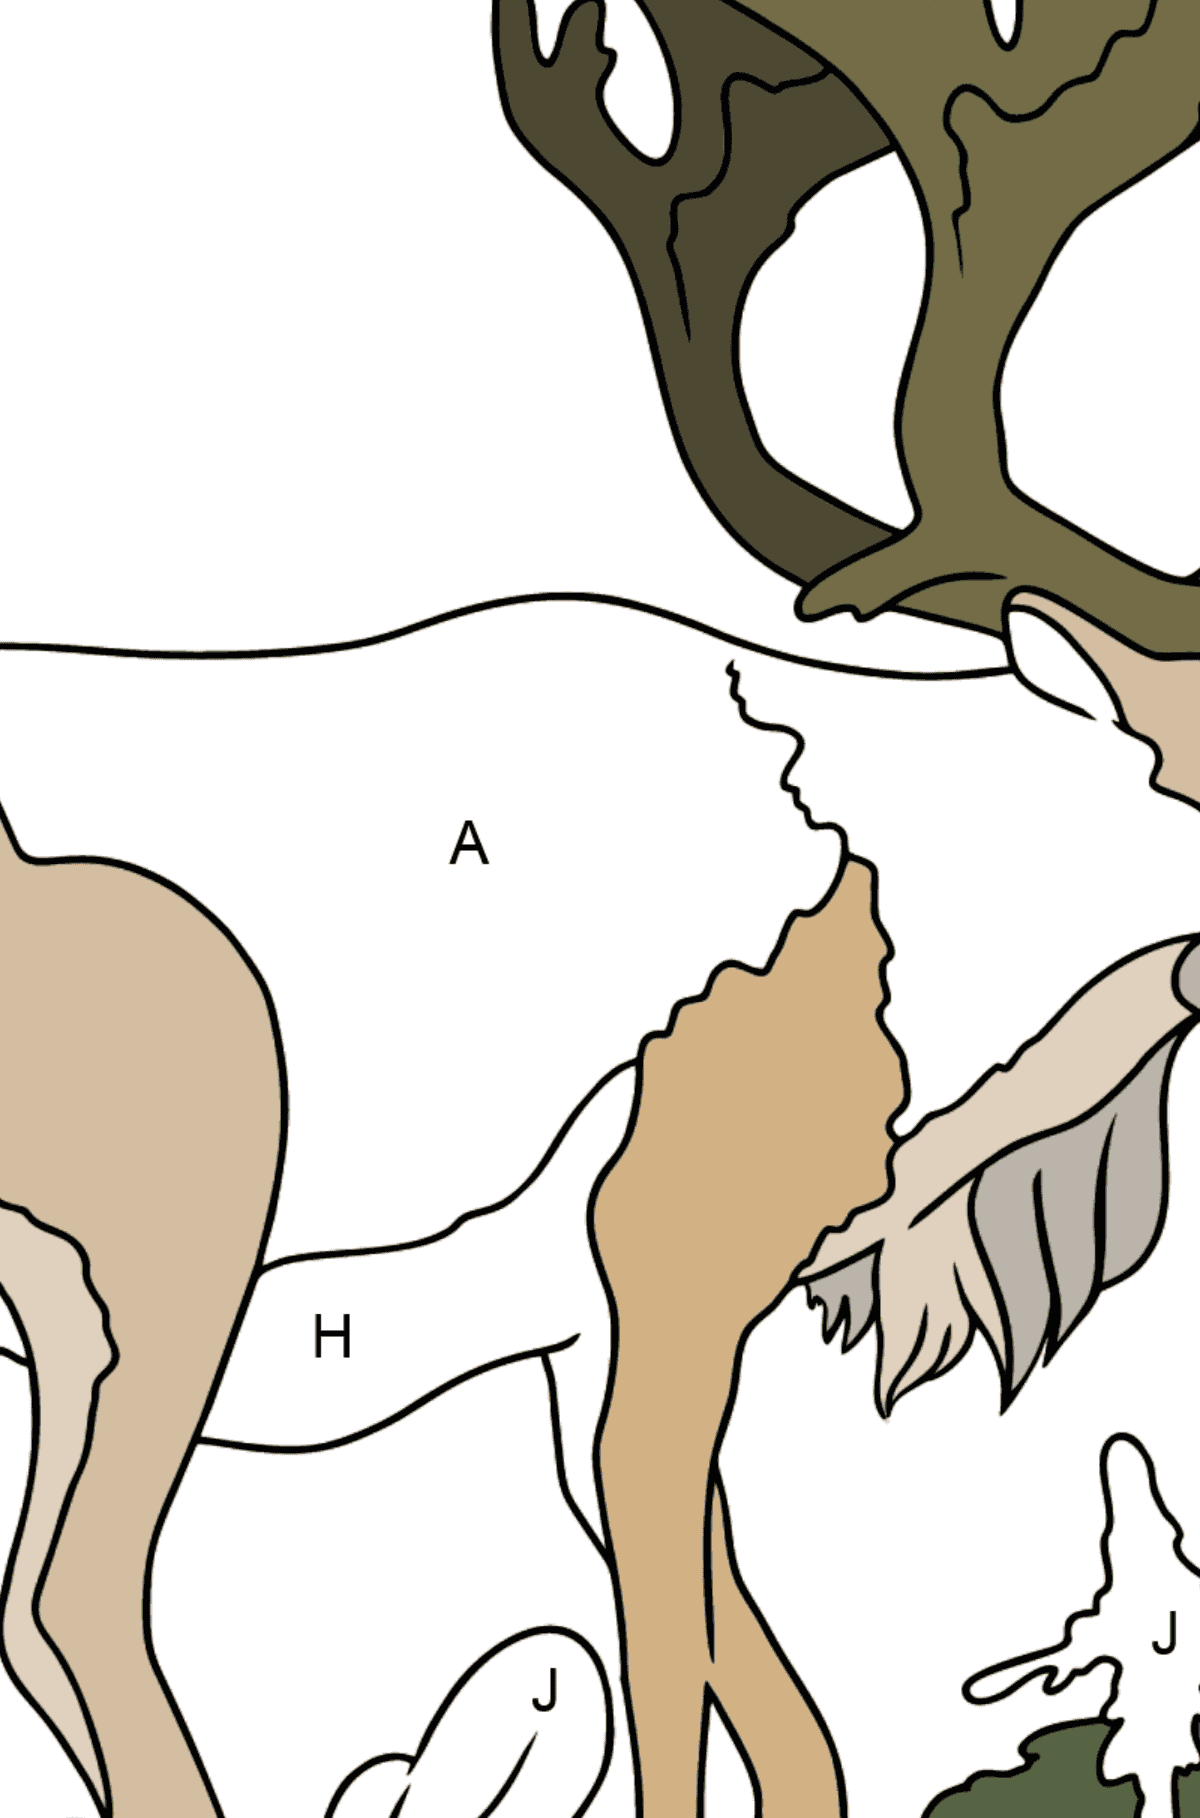 Coloring Page - a Deer with Gorgeous Antlers - Coloring by Letters for Kids